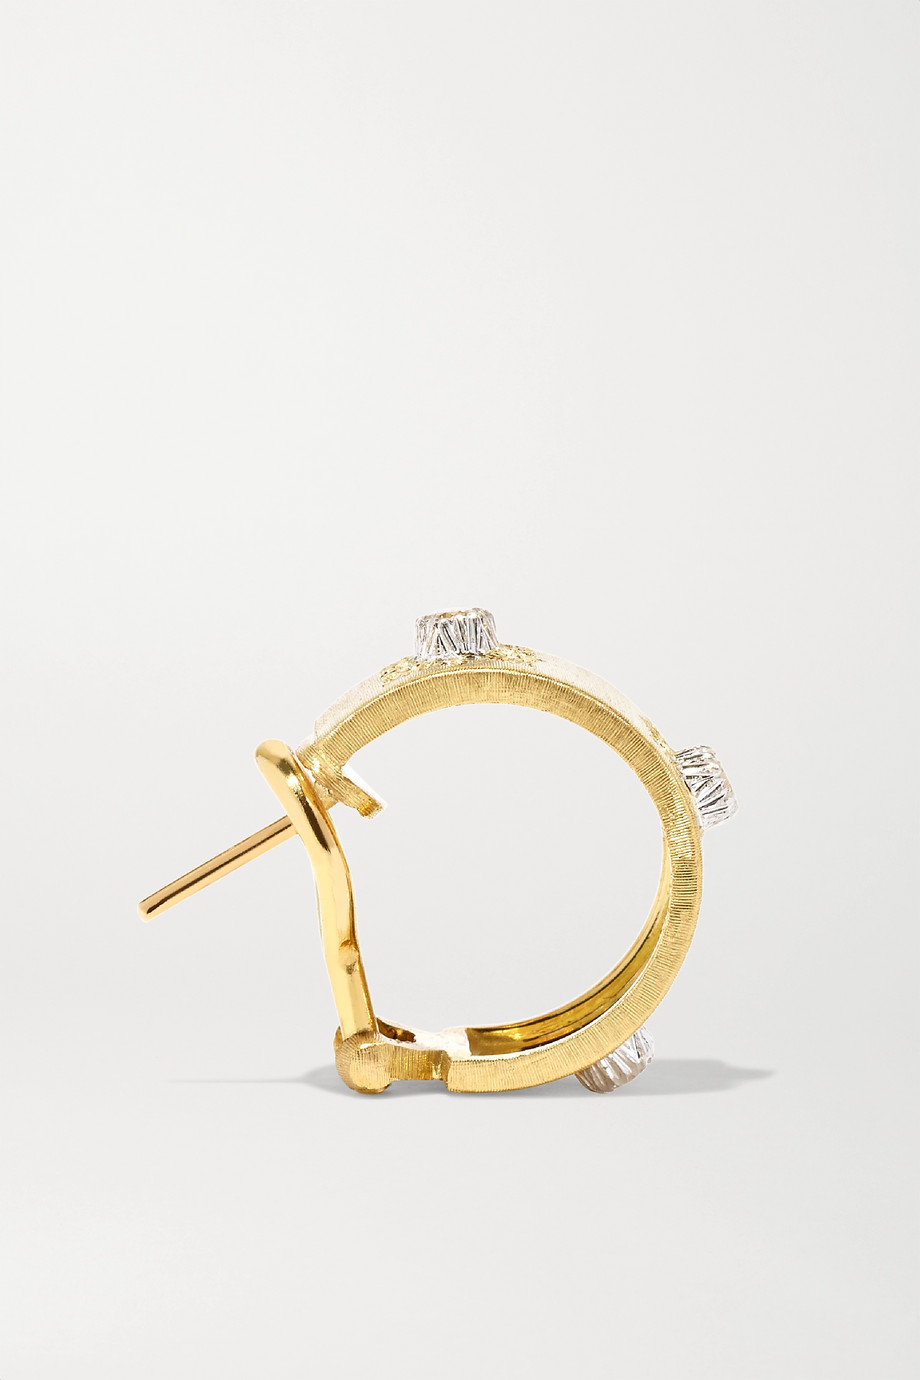 Buccellati Macri Classica 18-karat gold diamond hoop earrings